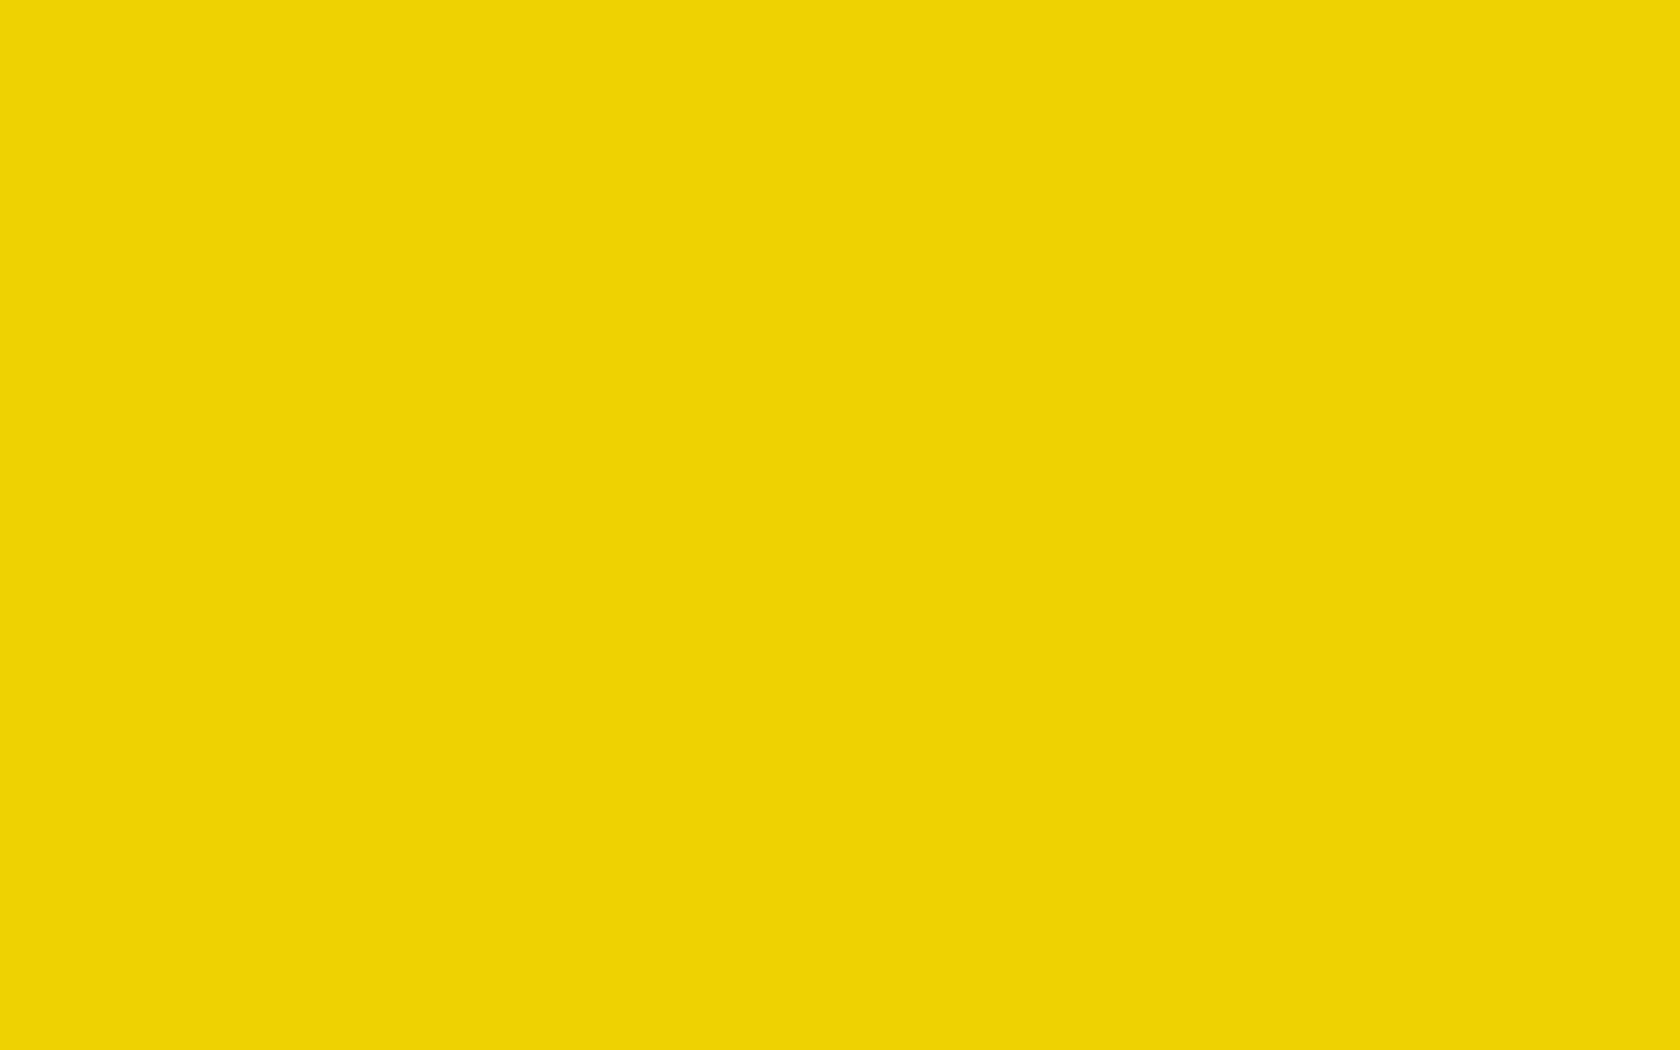 1680x1050 Safety Yellow Solid Color Background